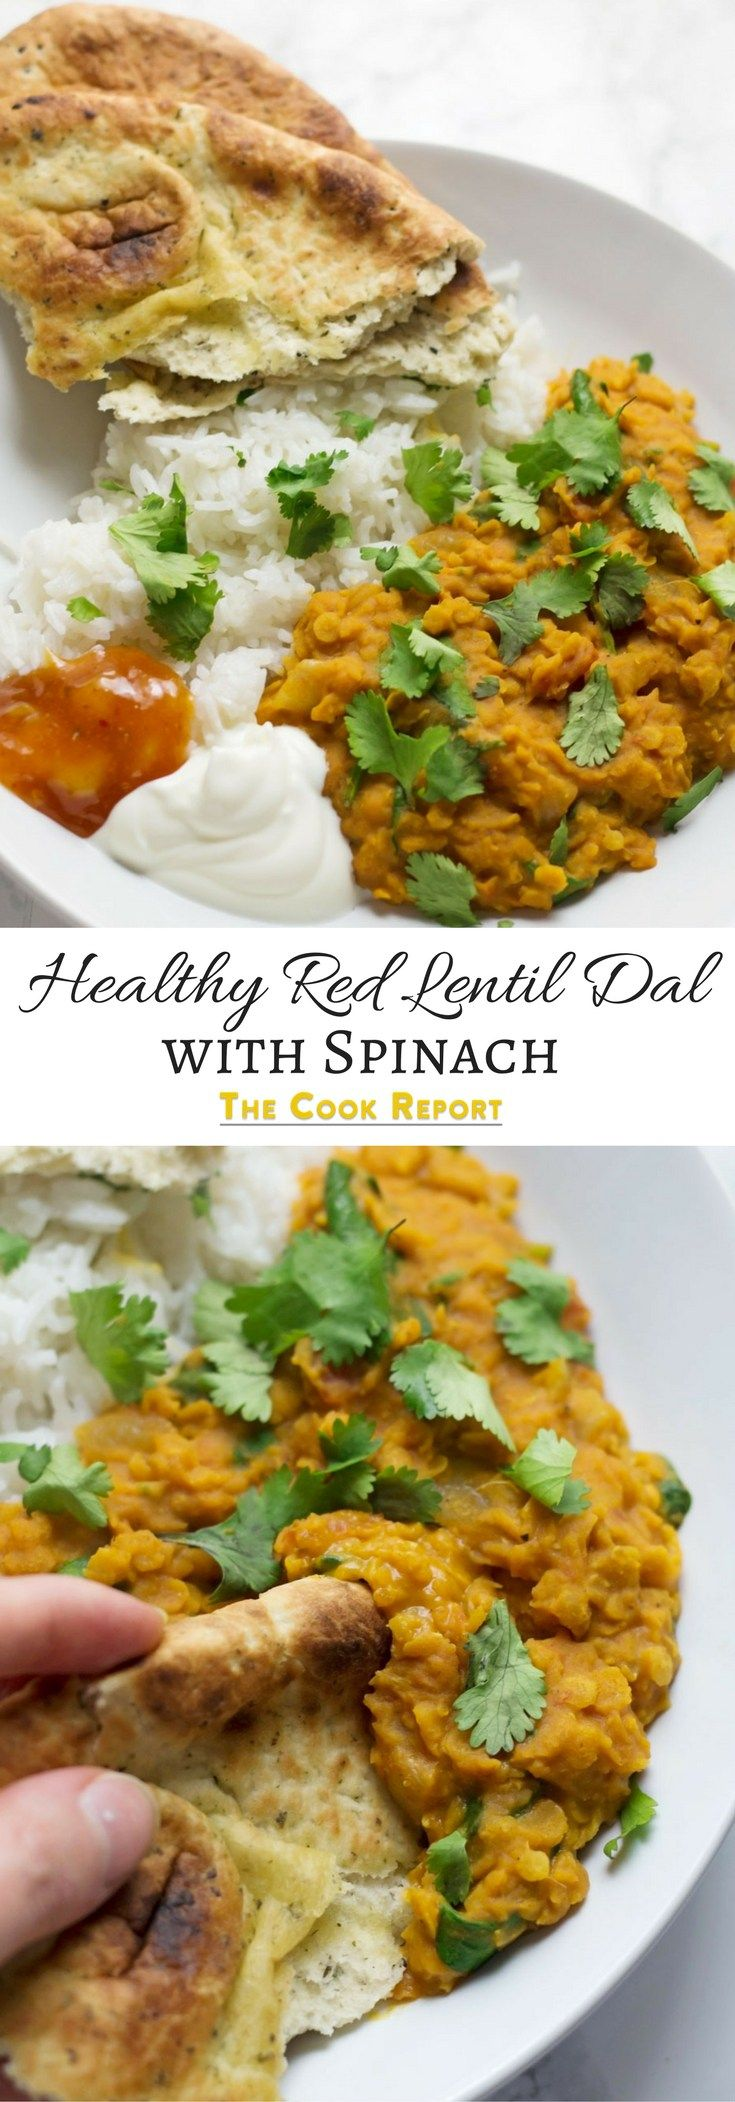 This red lentil dal is perfect when you're craving that curry flavour but you want something quick and healthy. Serve with yoghurt and mango chutney.